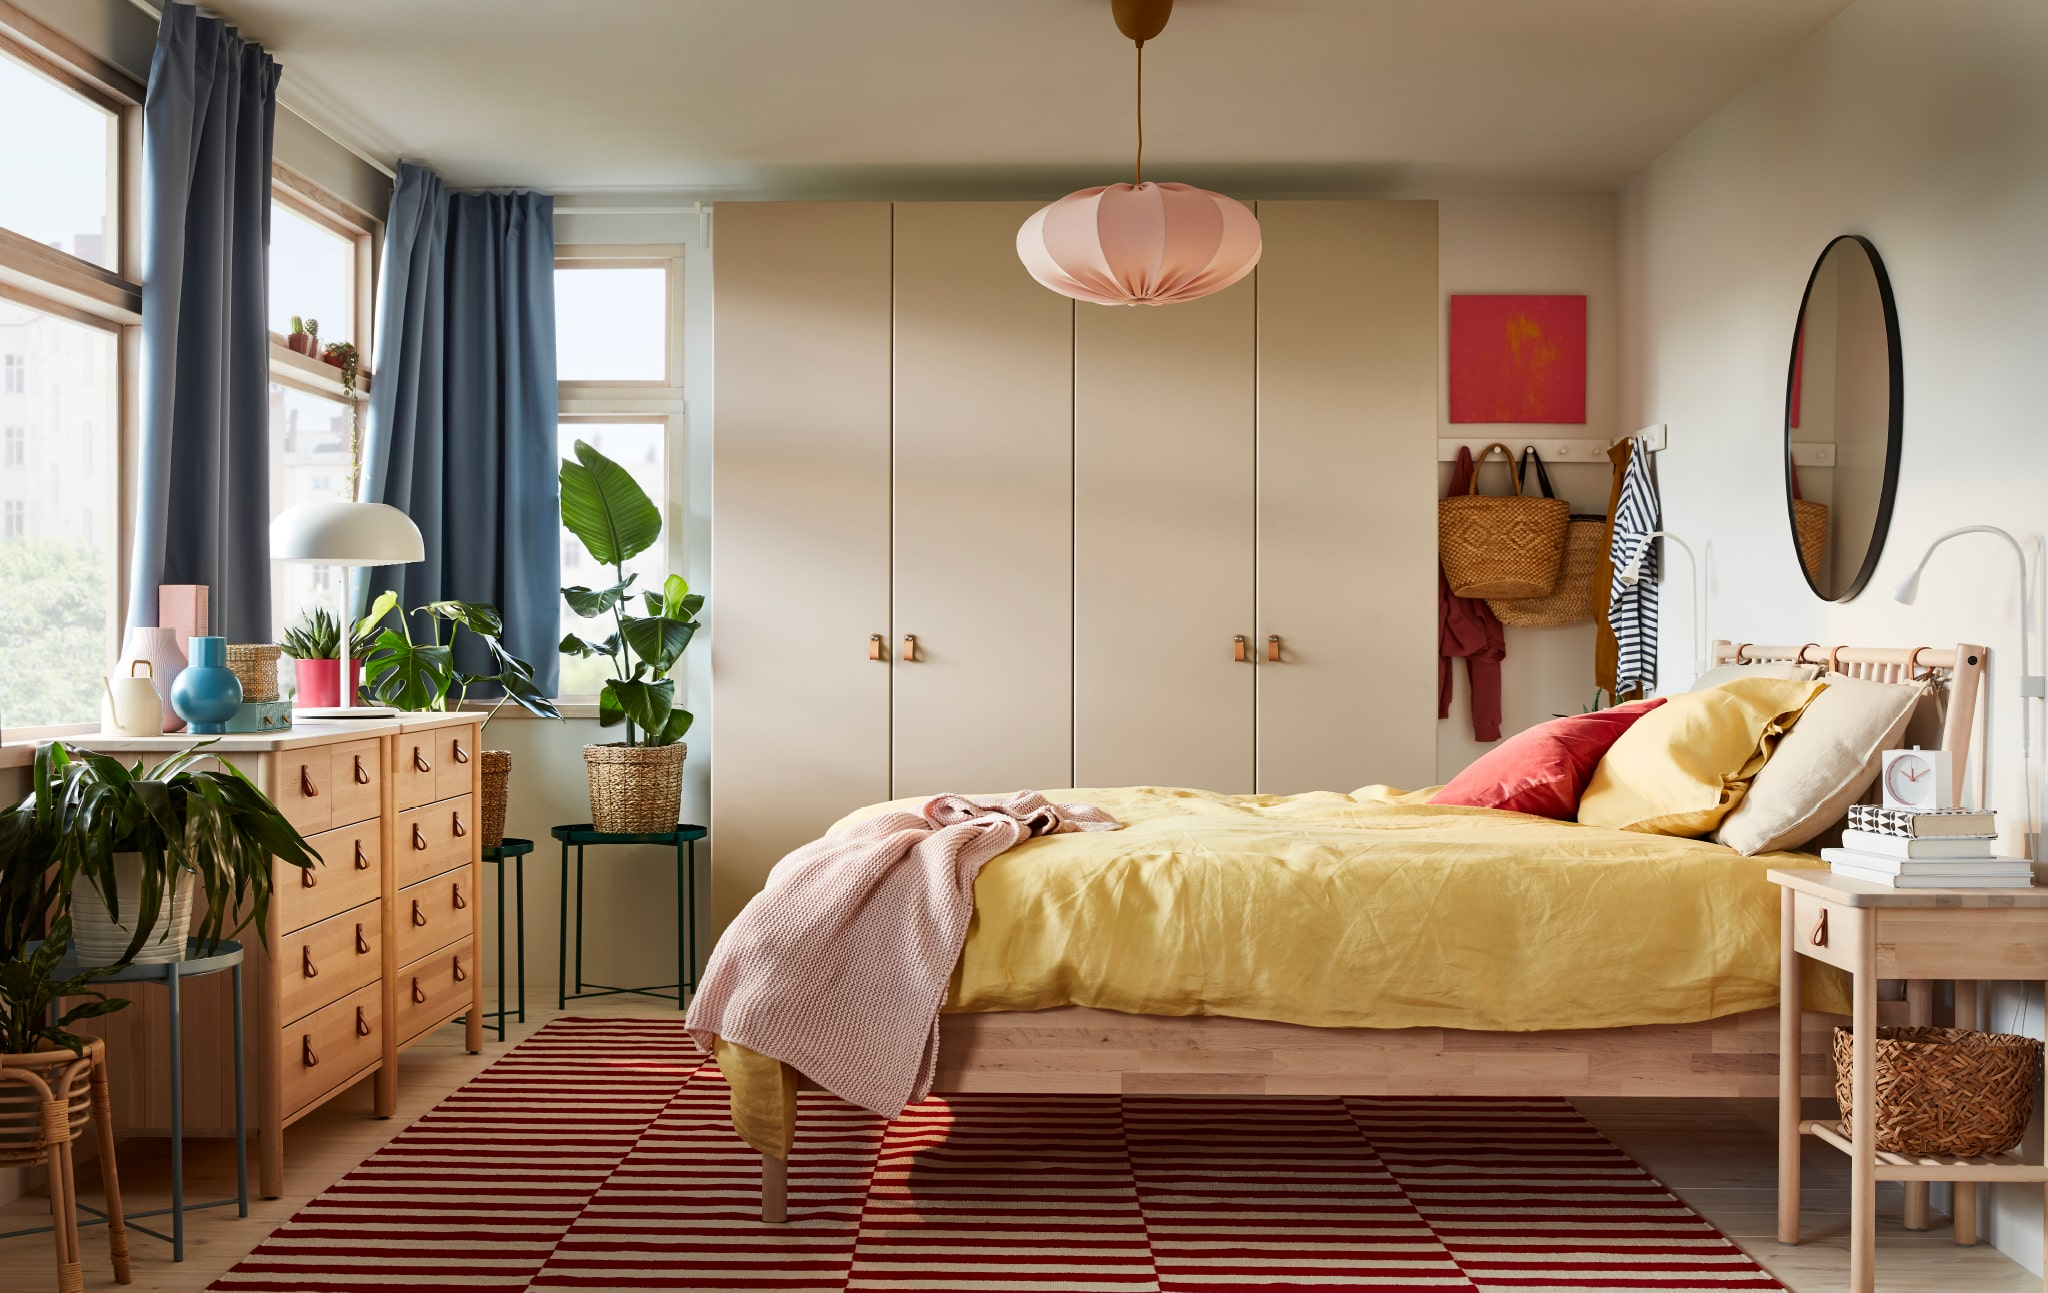 Conscious bedroom choices